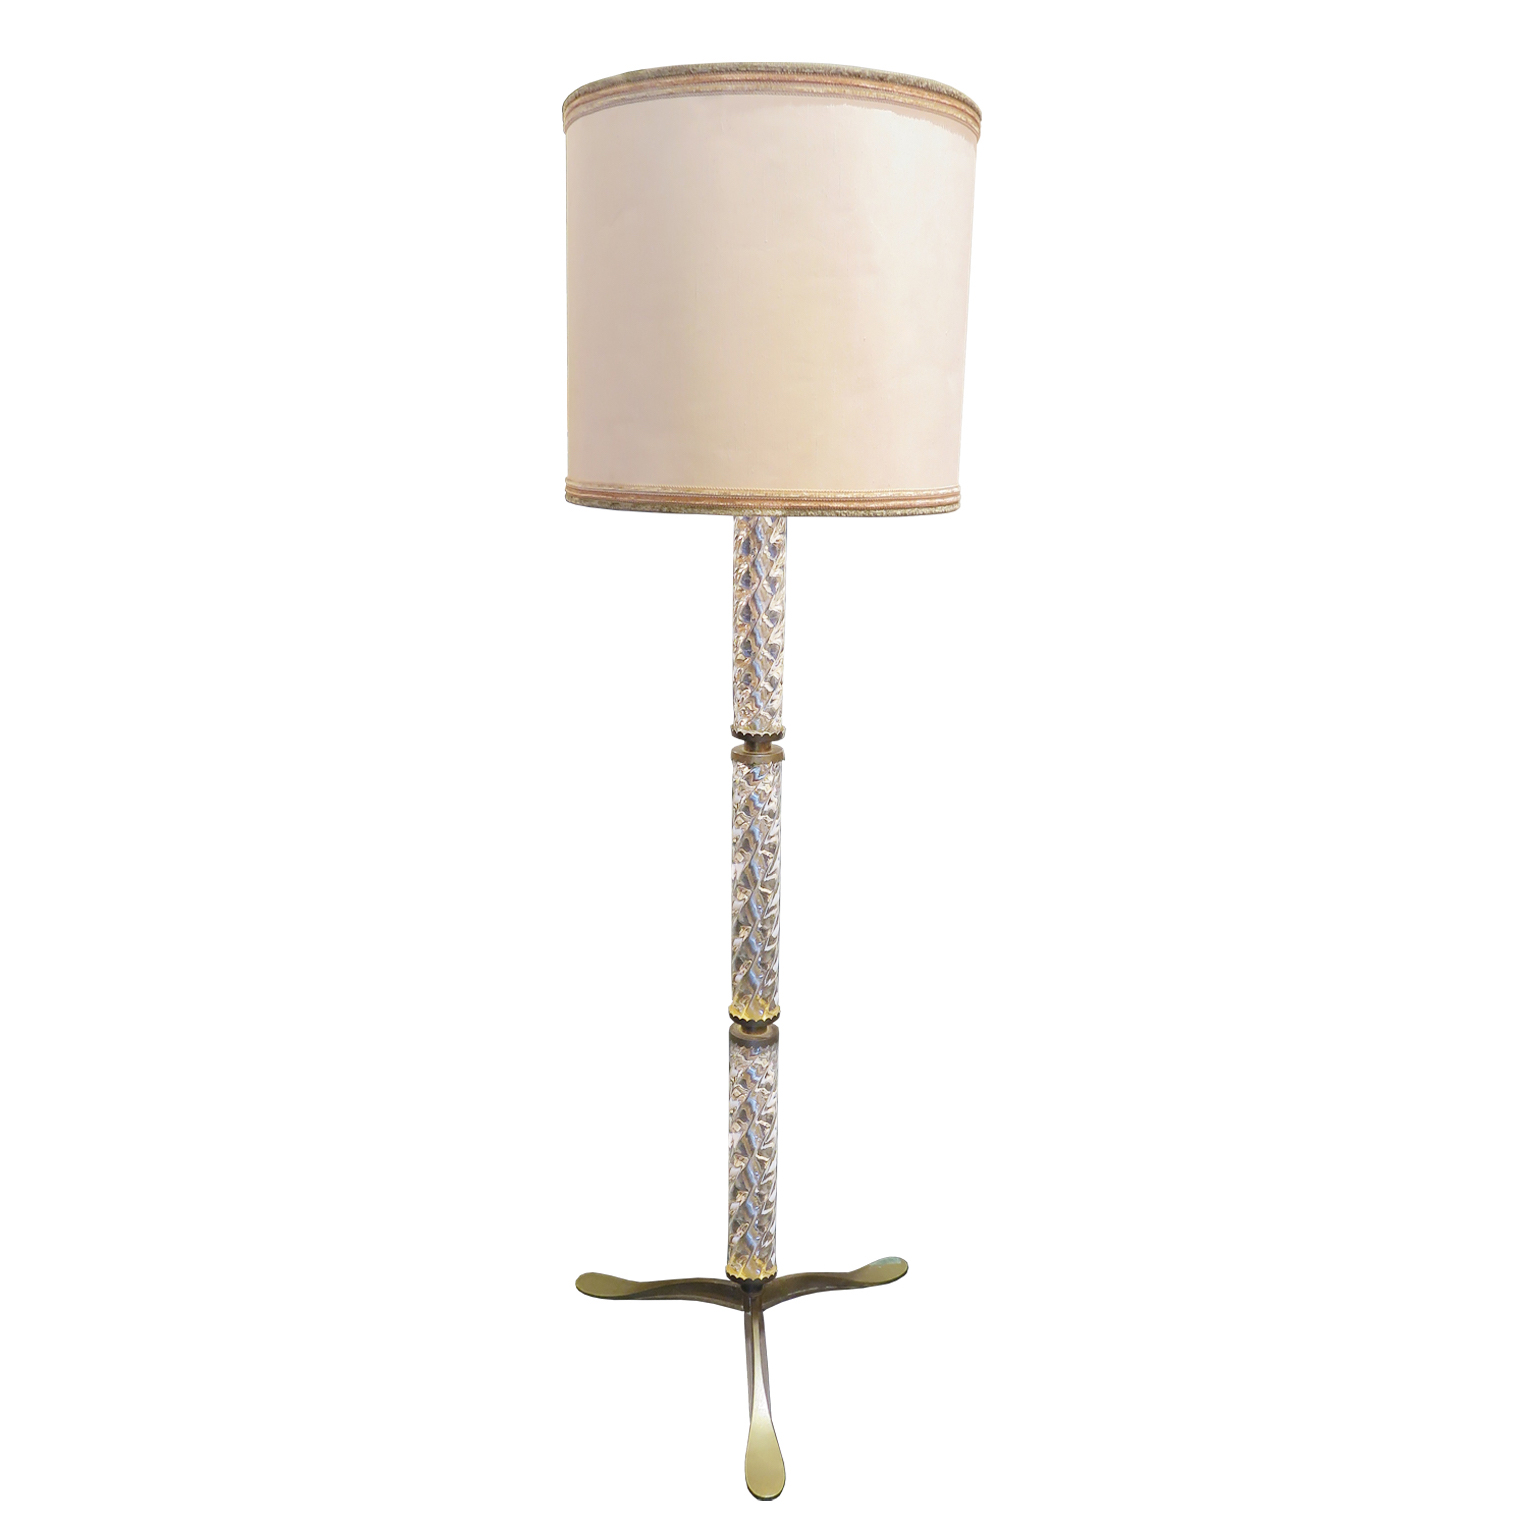 Mid-Century Murano Glass Floor Lamp with brass fittings and silk shade cover